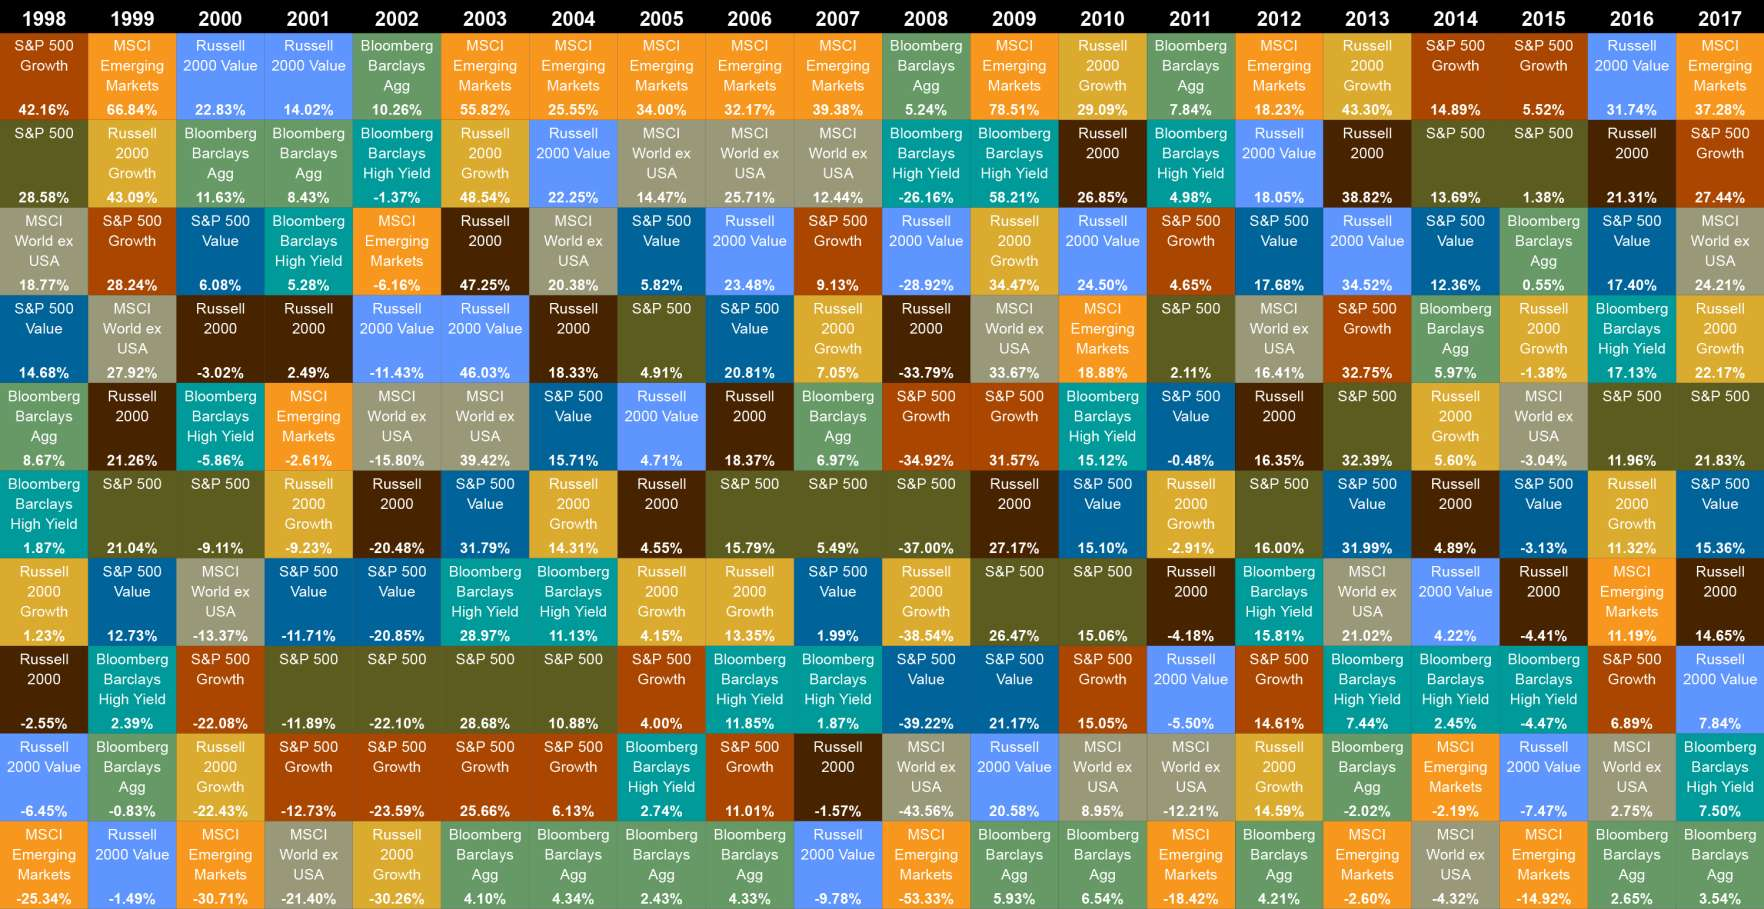 The Callan Periodic Table of Investment Returns; click to expand.